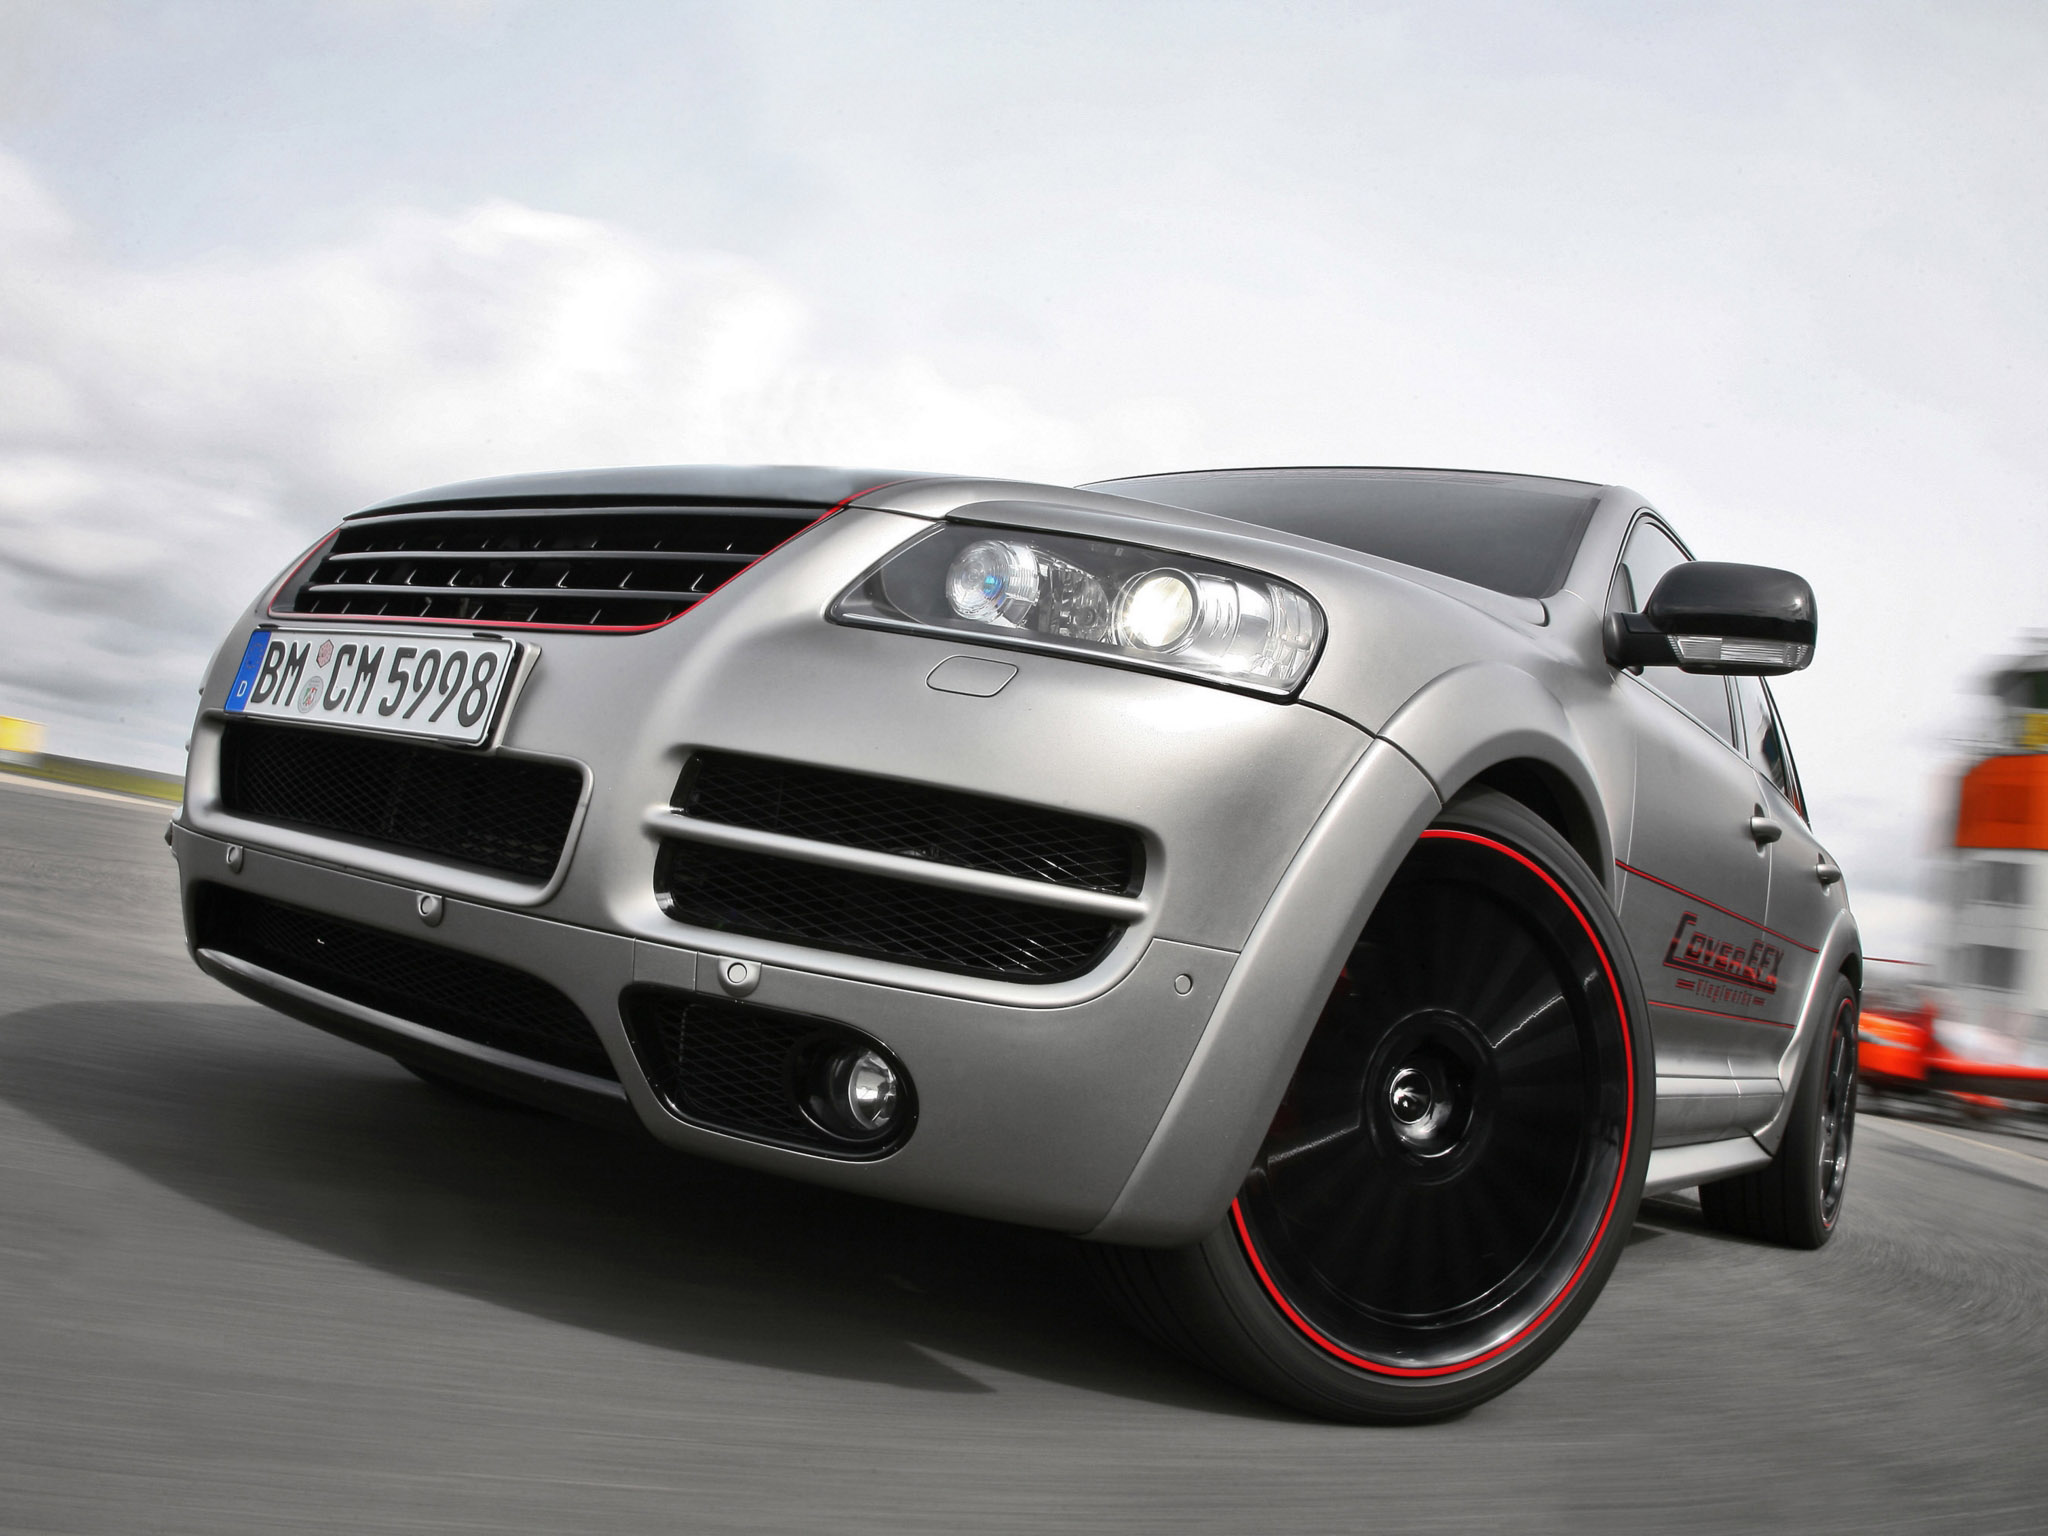 volkswagen touareg cool wallpapers